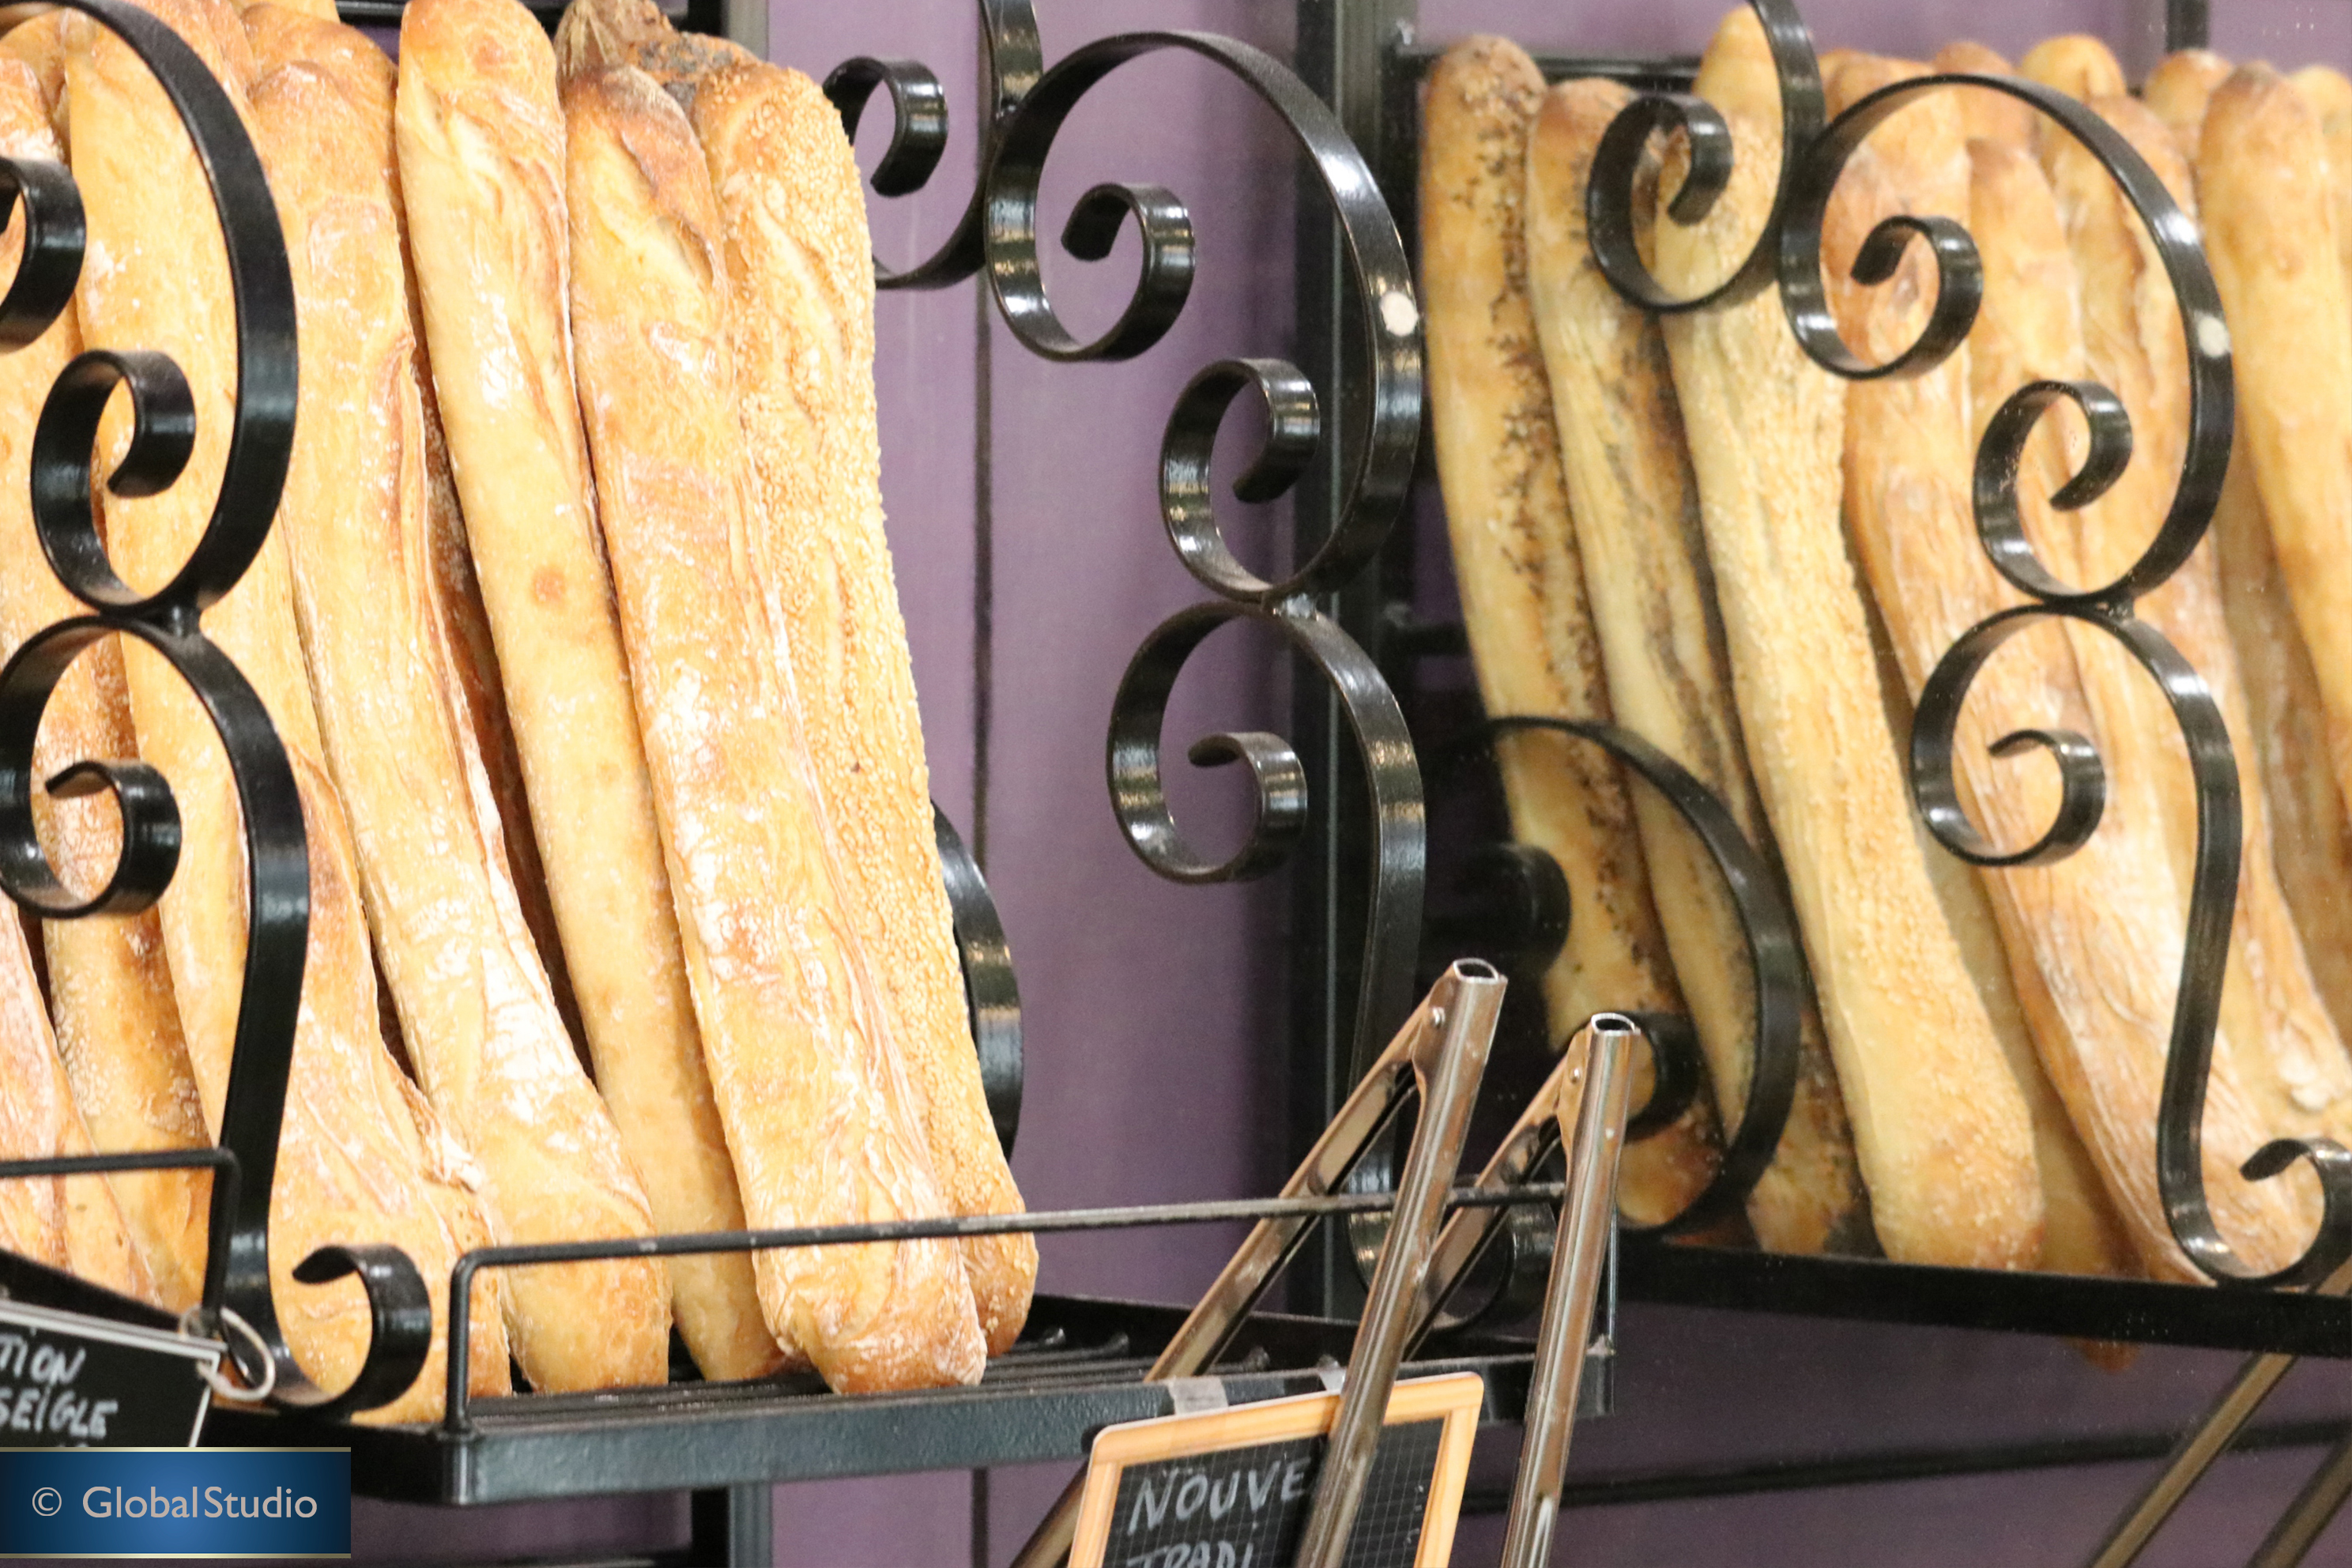 Paris - Baguettes-c-Global-Studio-Michael-K-Reynolds